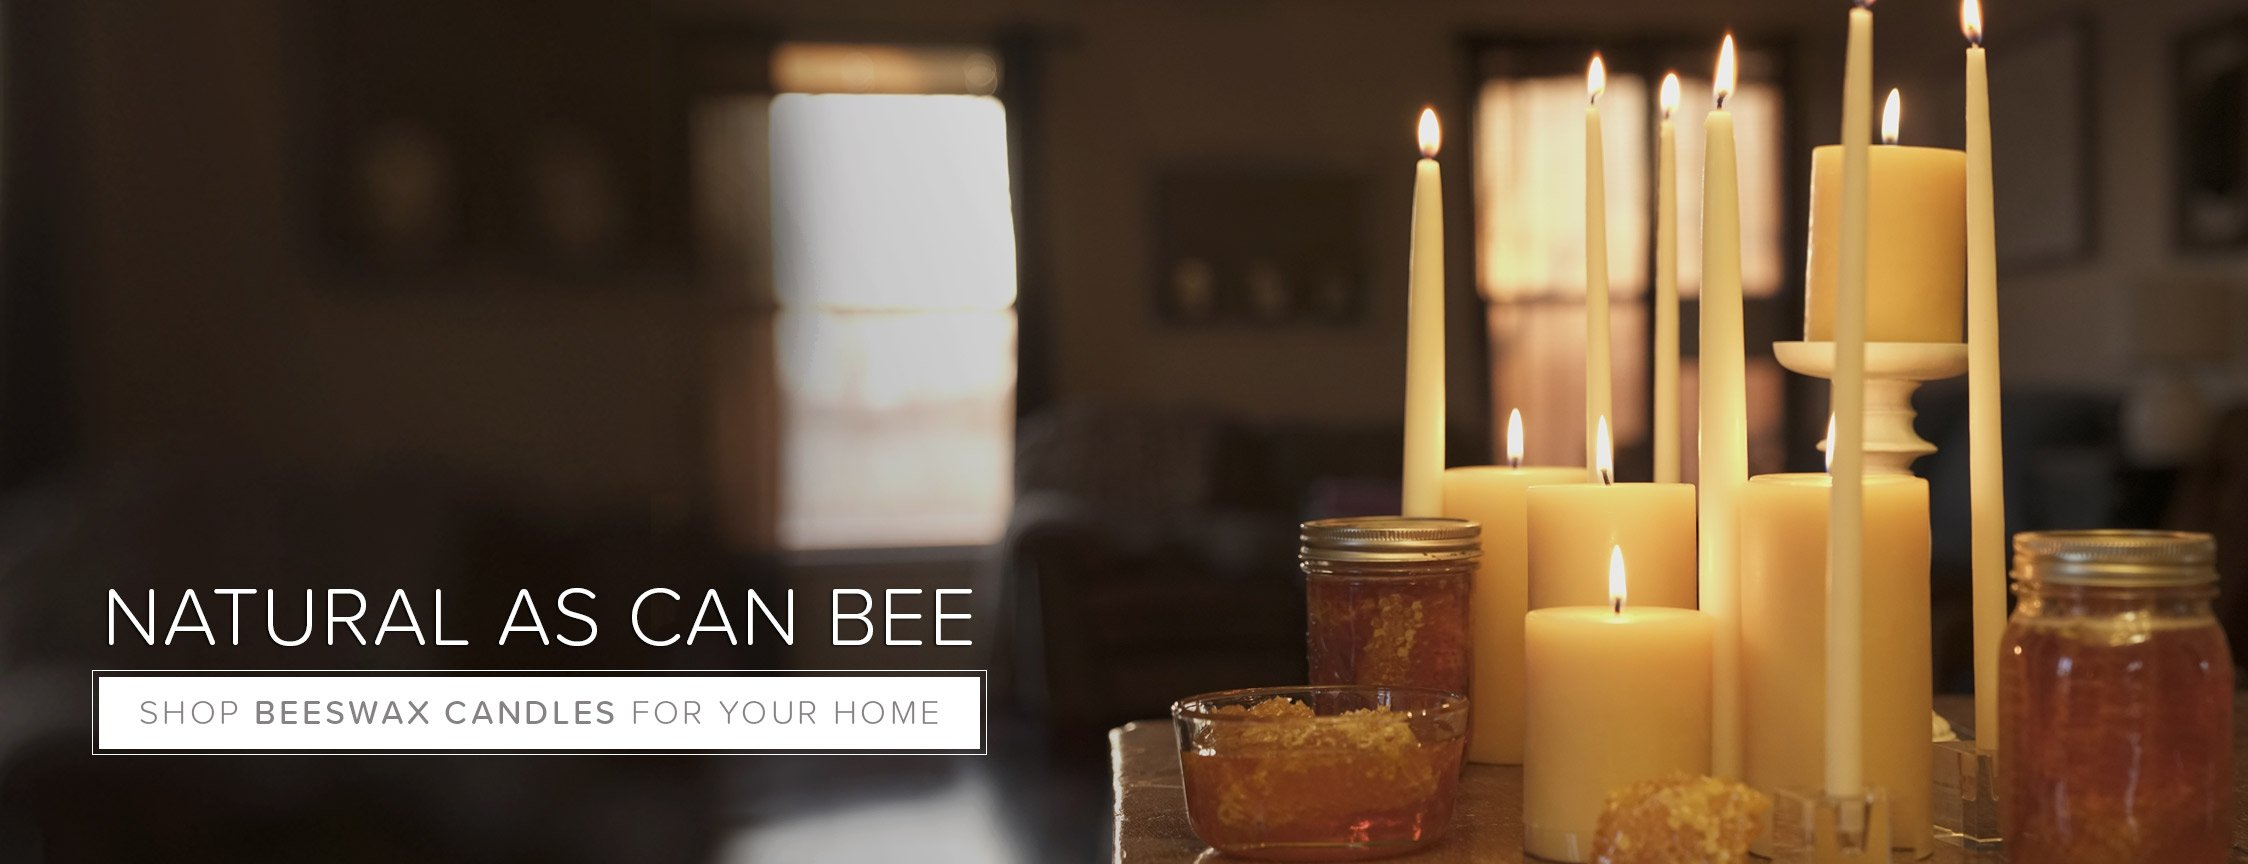 Beeswax candles are made using sustainable ingredients and give off a light honey scent.